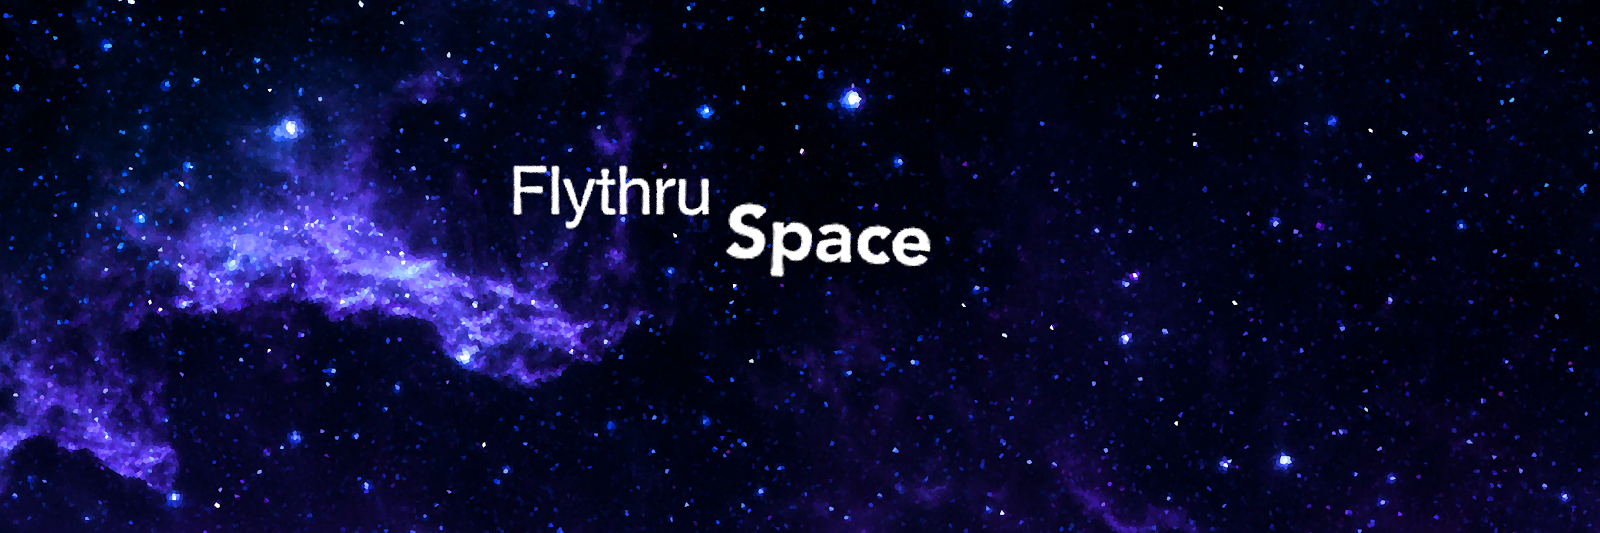 Flythru.Space